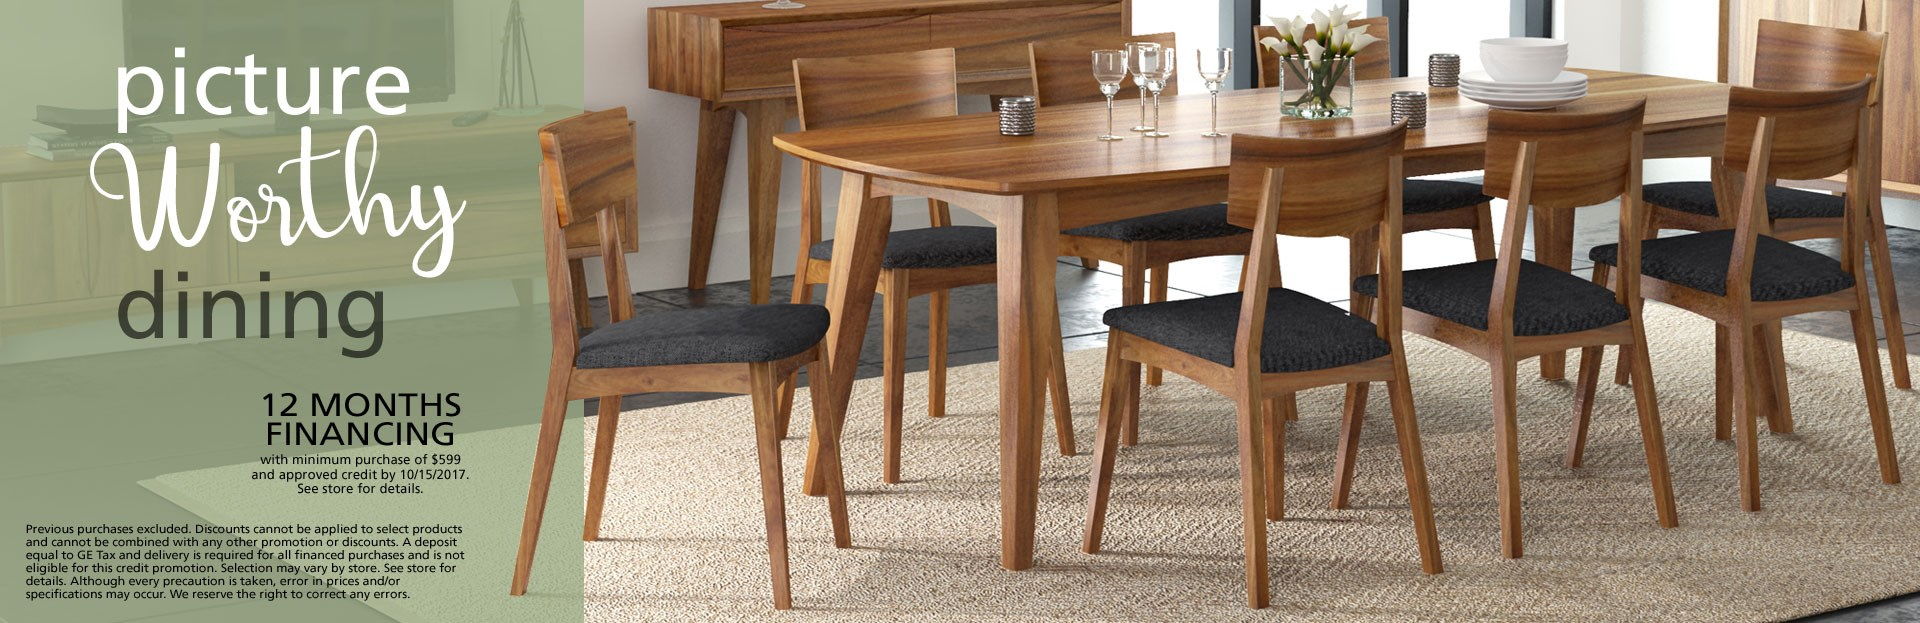 Dining feature; special financing available. See store for details.